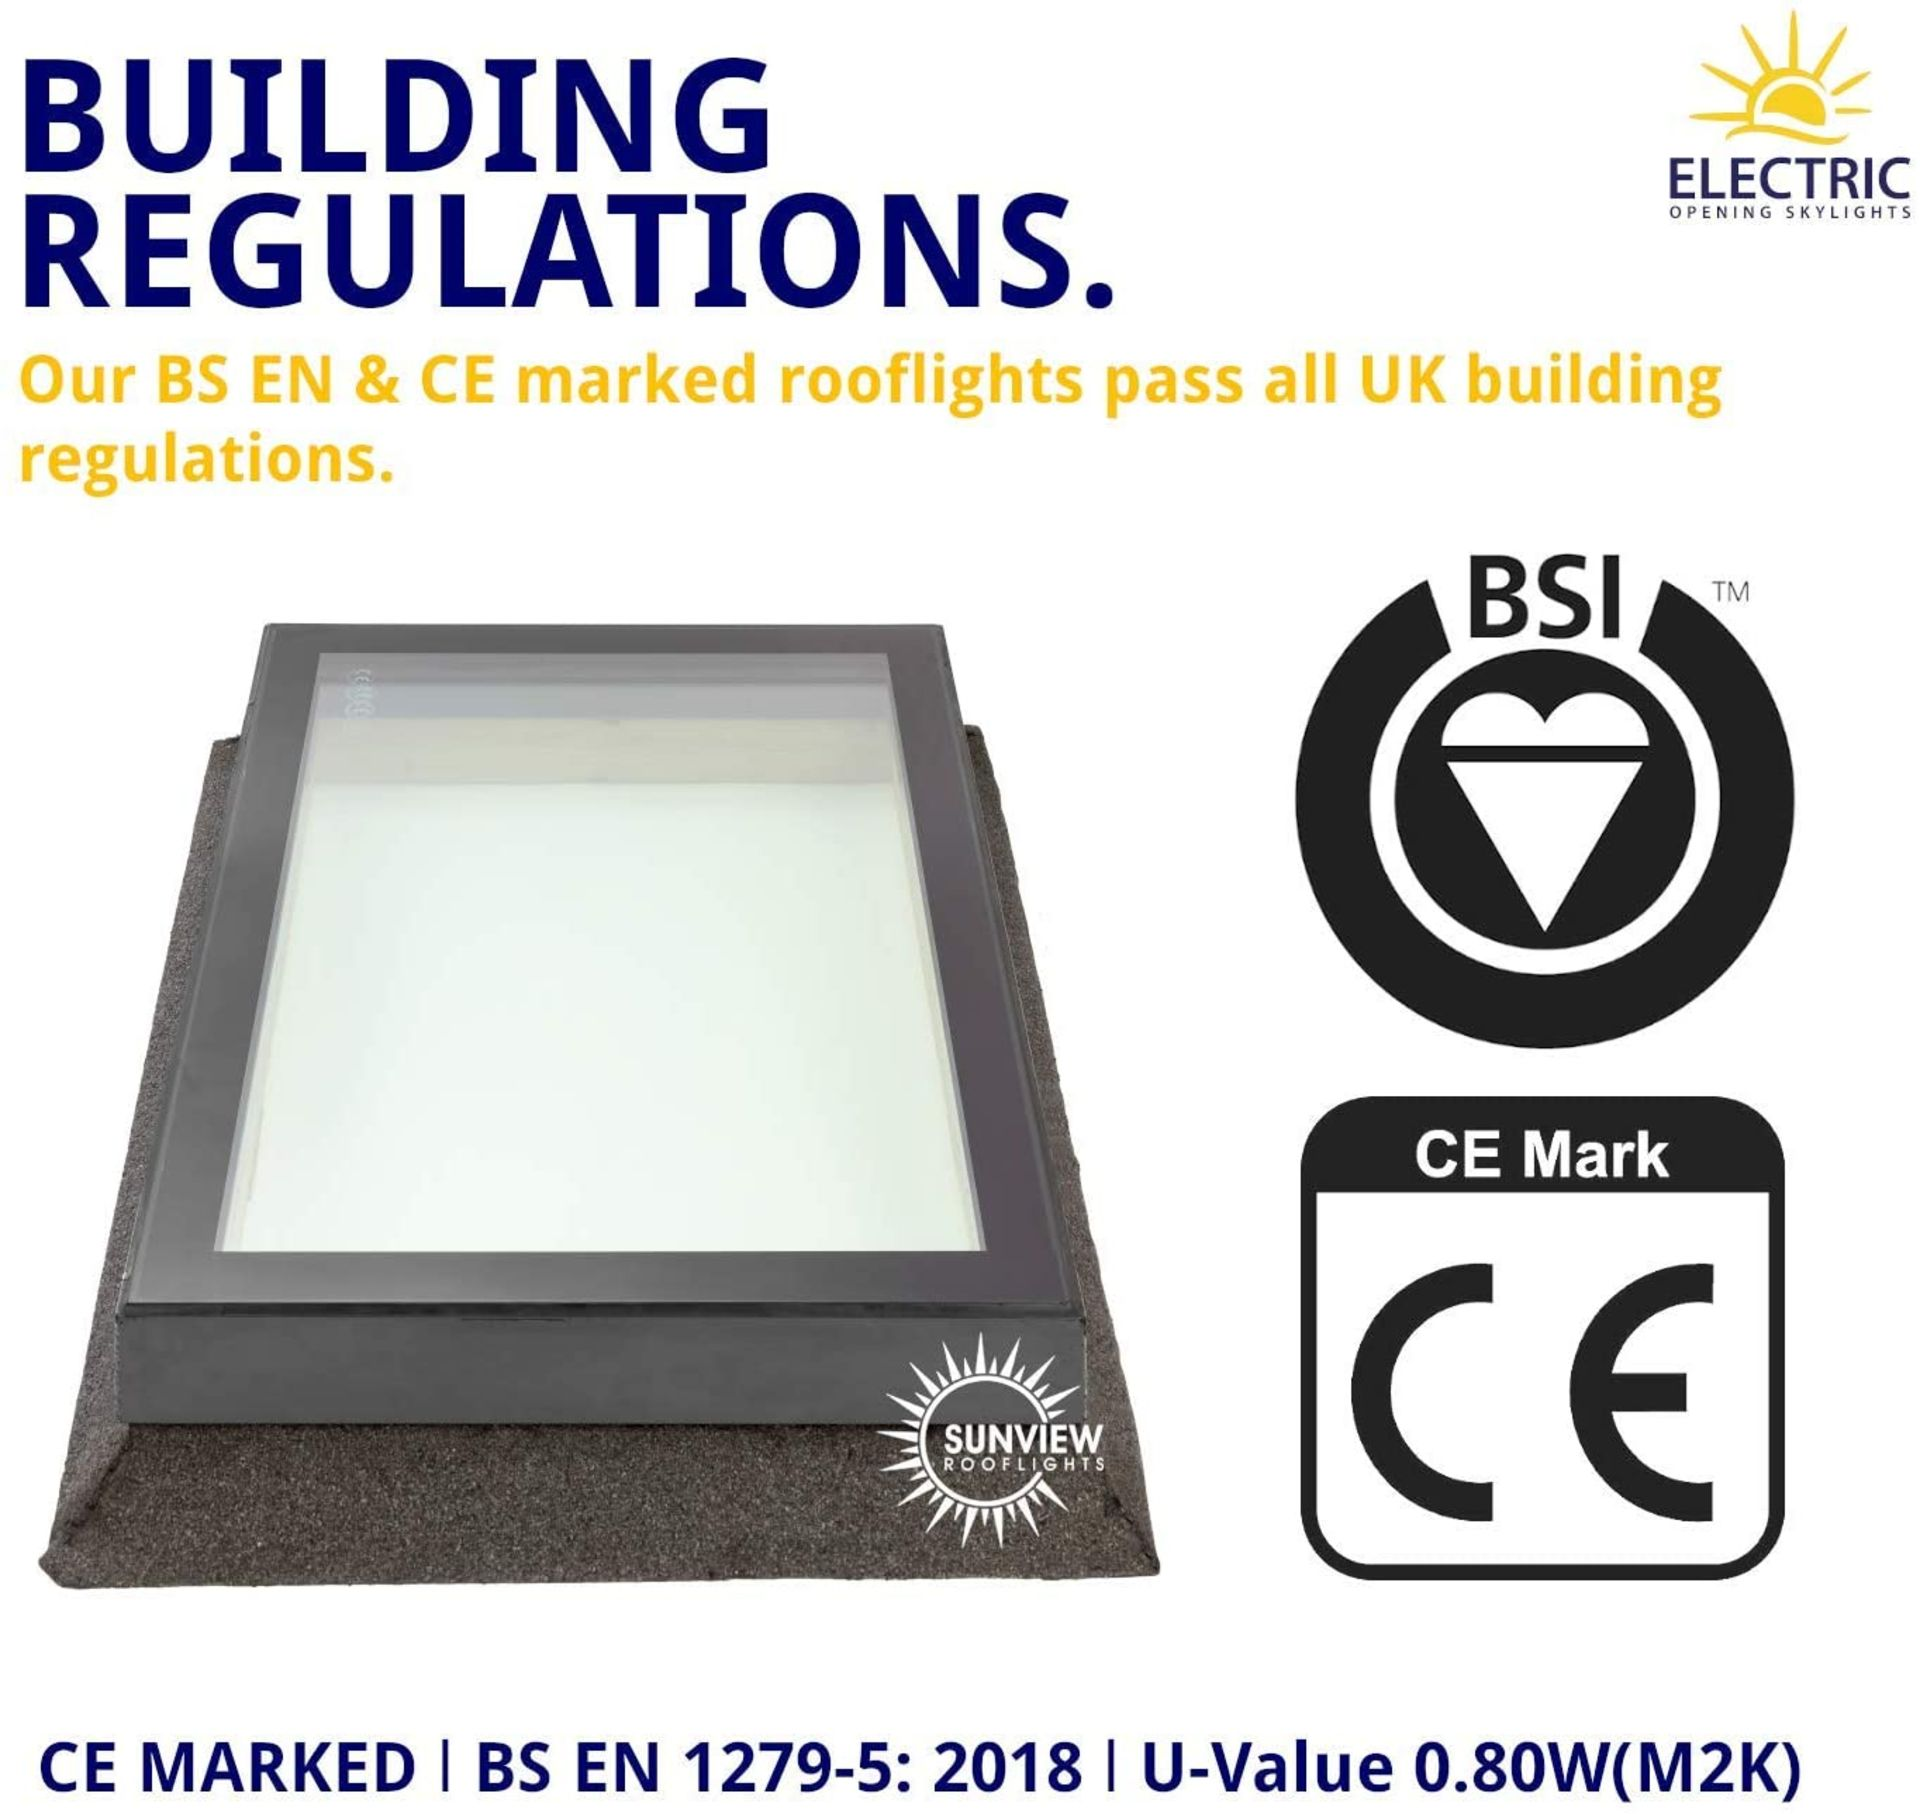 Panoroof (EOS) Fixed Aluminium Triple-Glazed Laminated Skylight with Self-Cleaning Glass - - Image 5 of 6